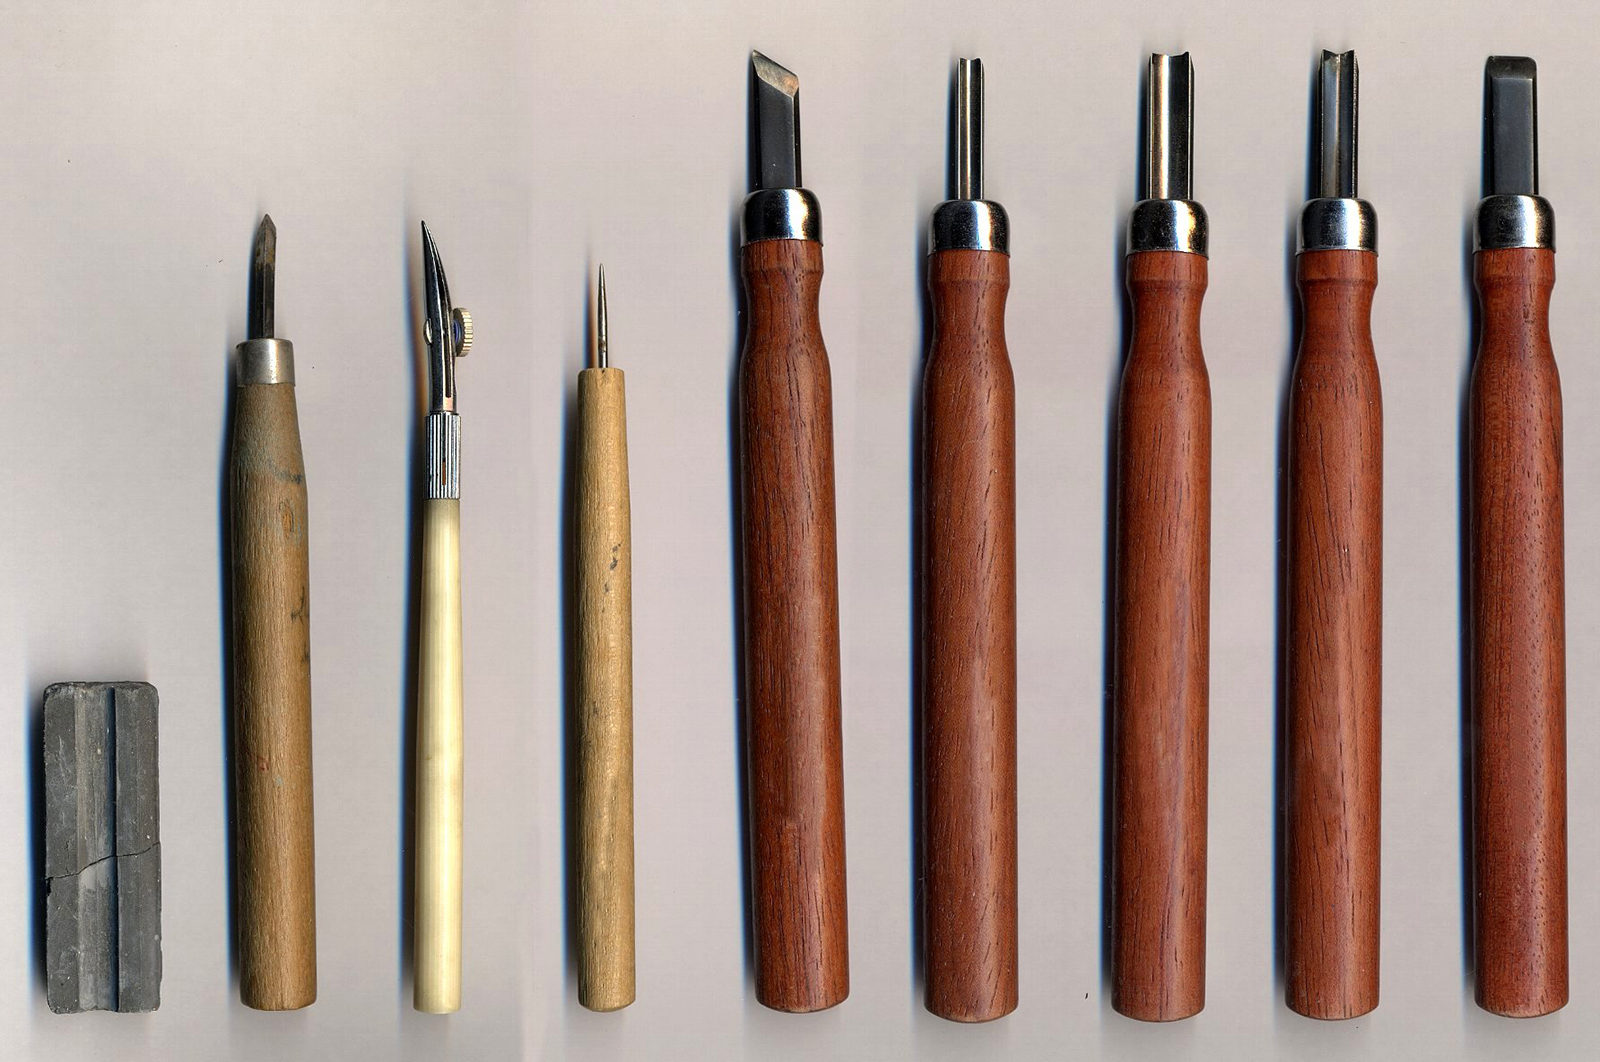 How to select the best chisel tool for a creative masterpiece